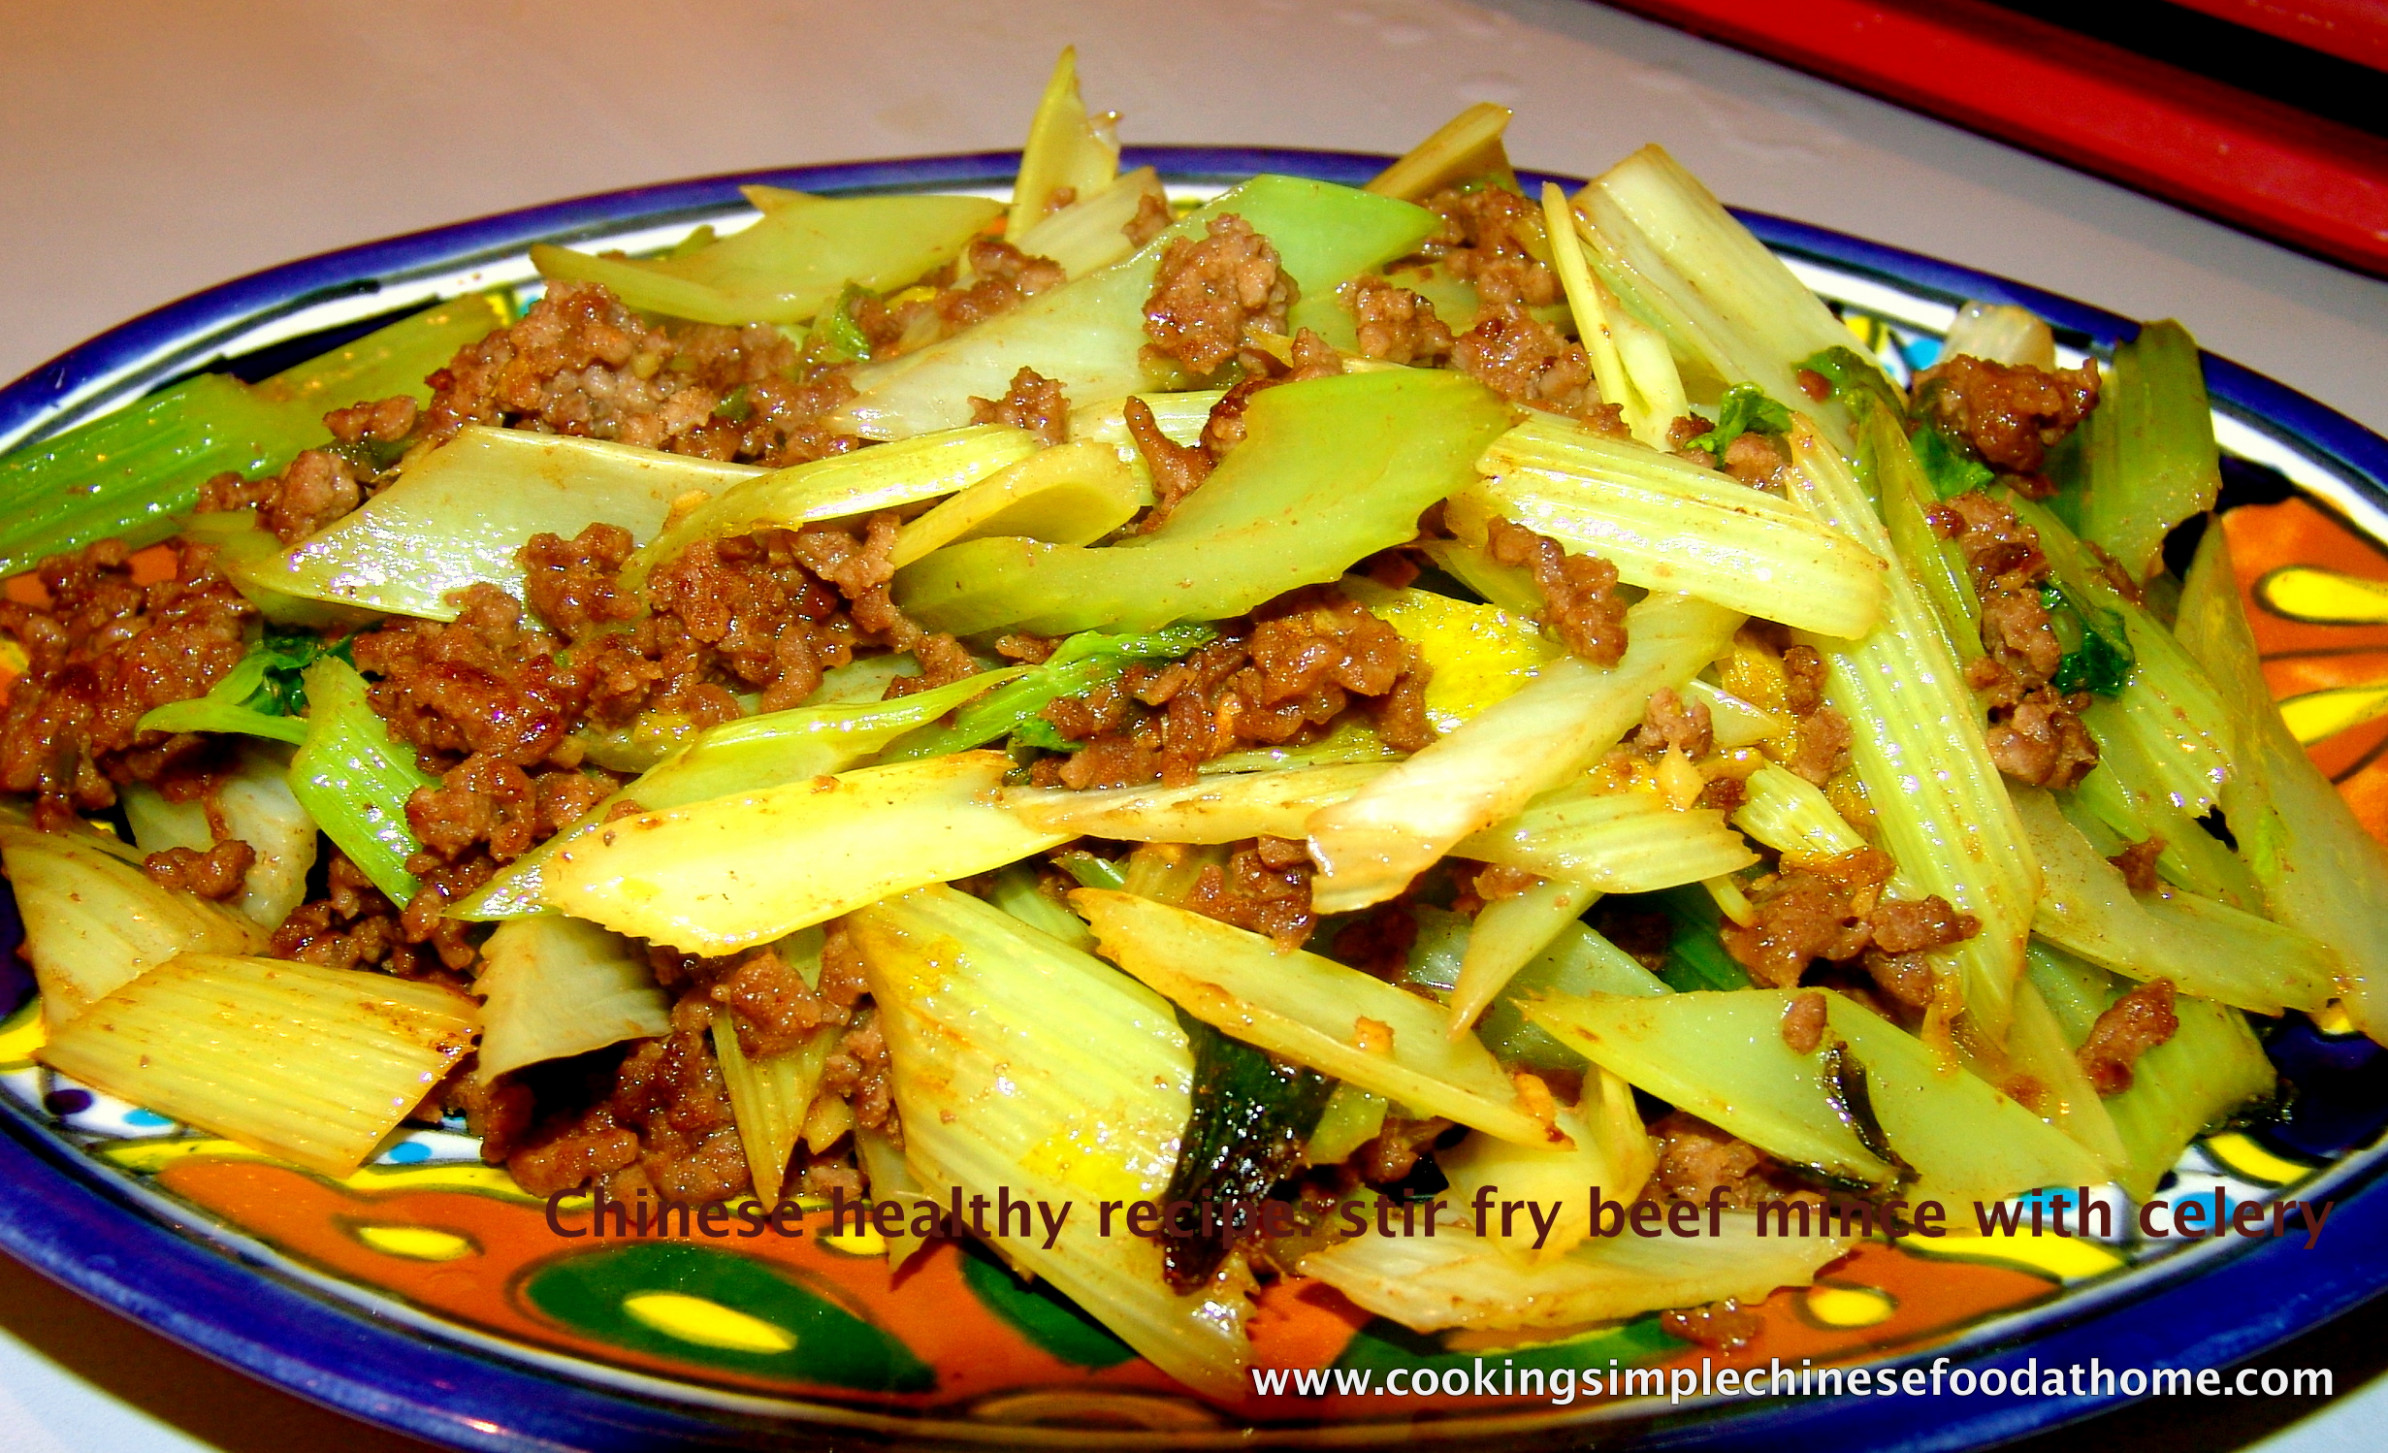 Chinese stir fried beef mince with celery - recipes minced meat healthy